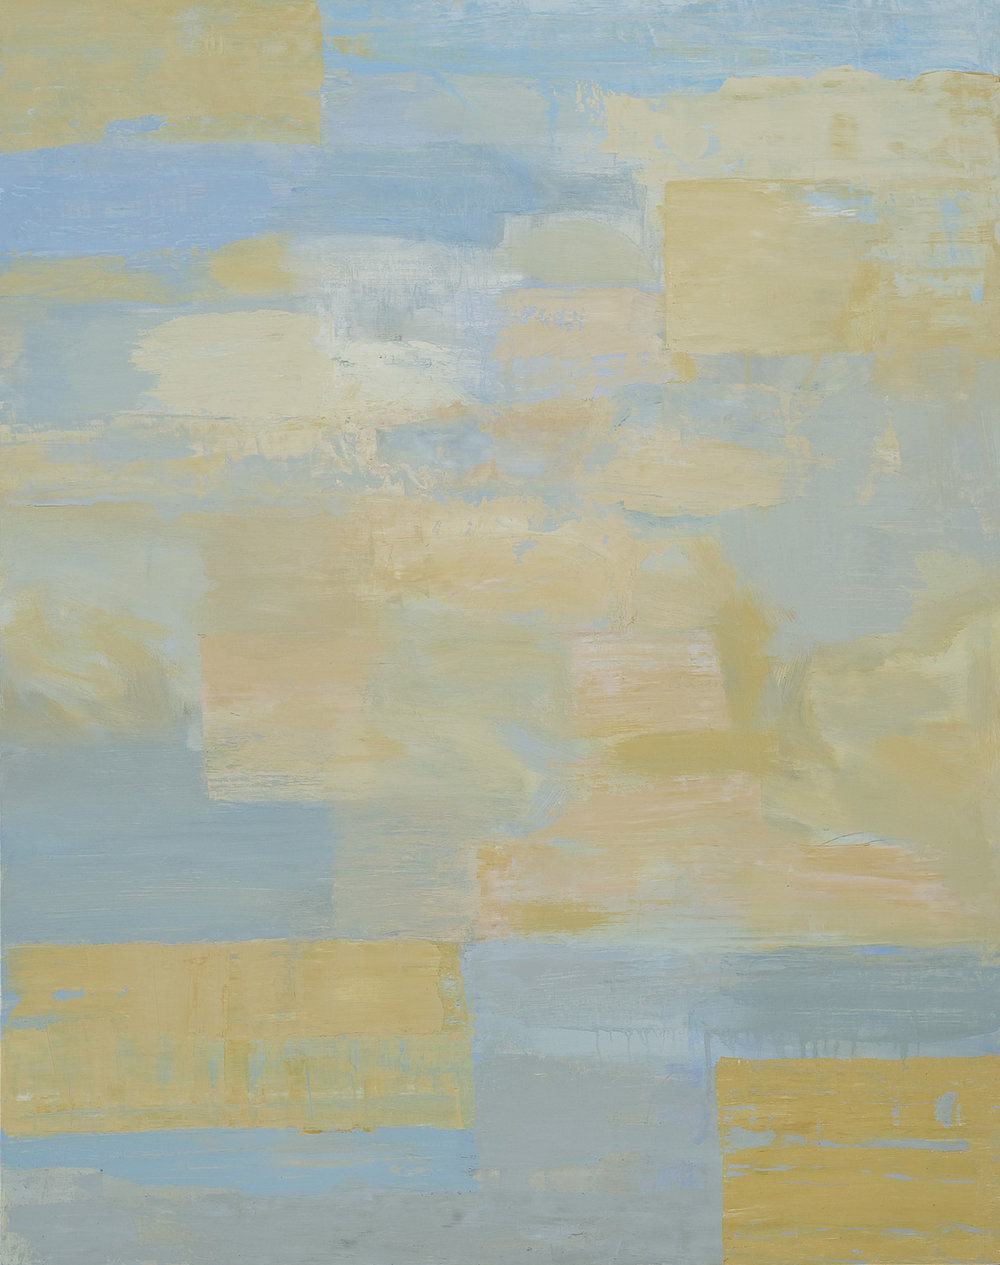 STATE OF SKY  •  oil on wood  •  38 by 30 inches  •  2008